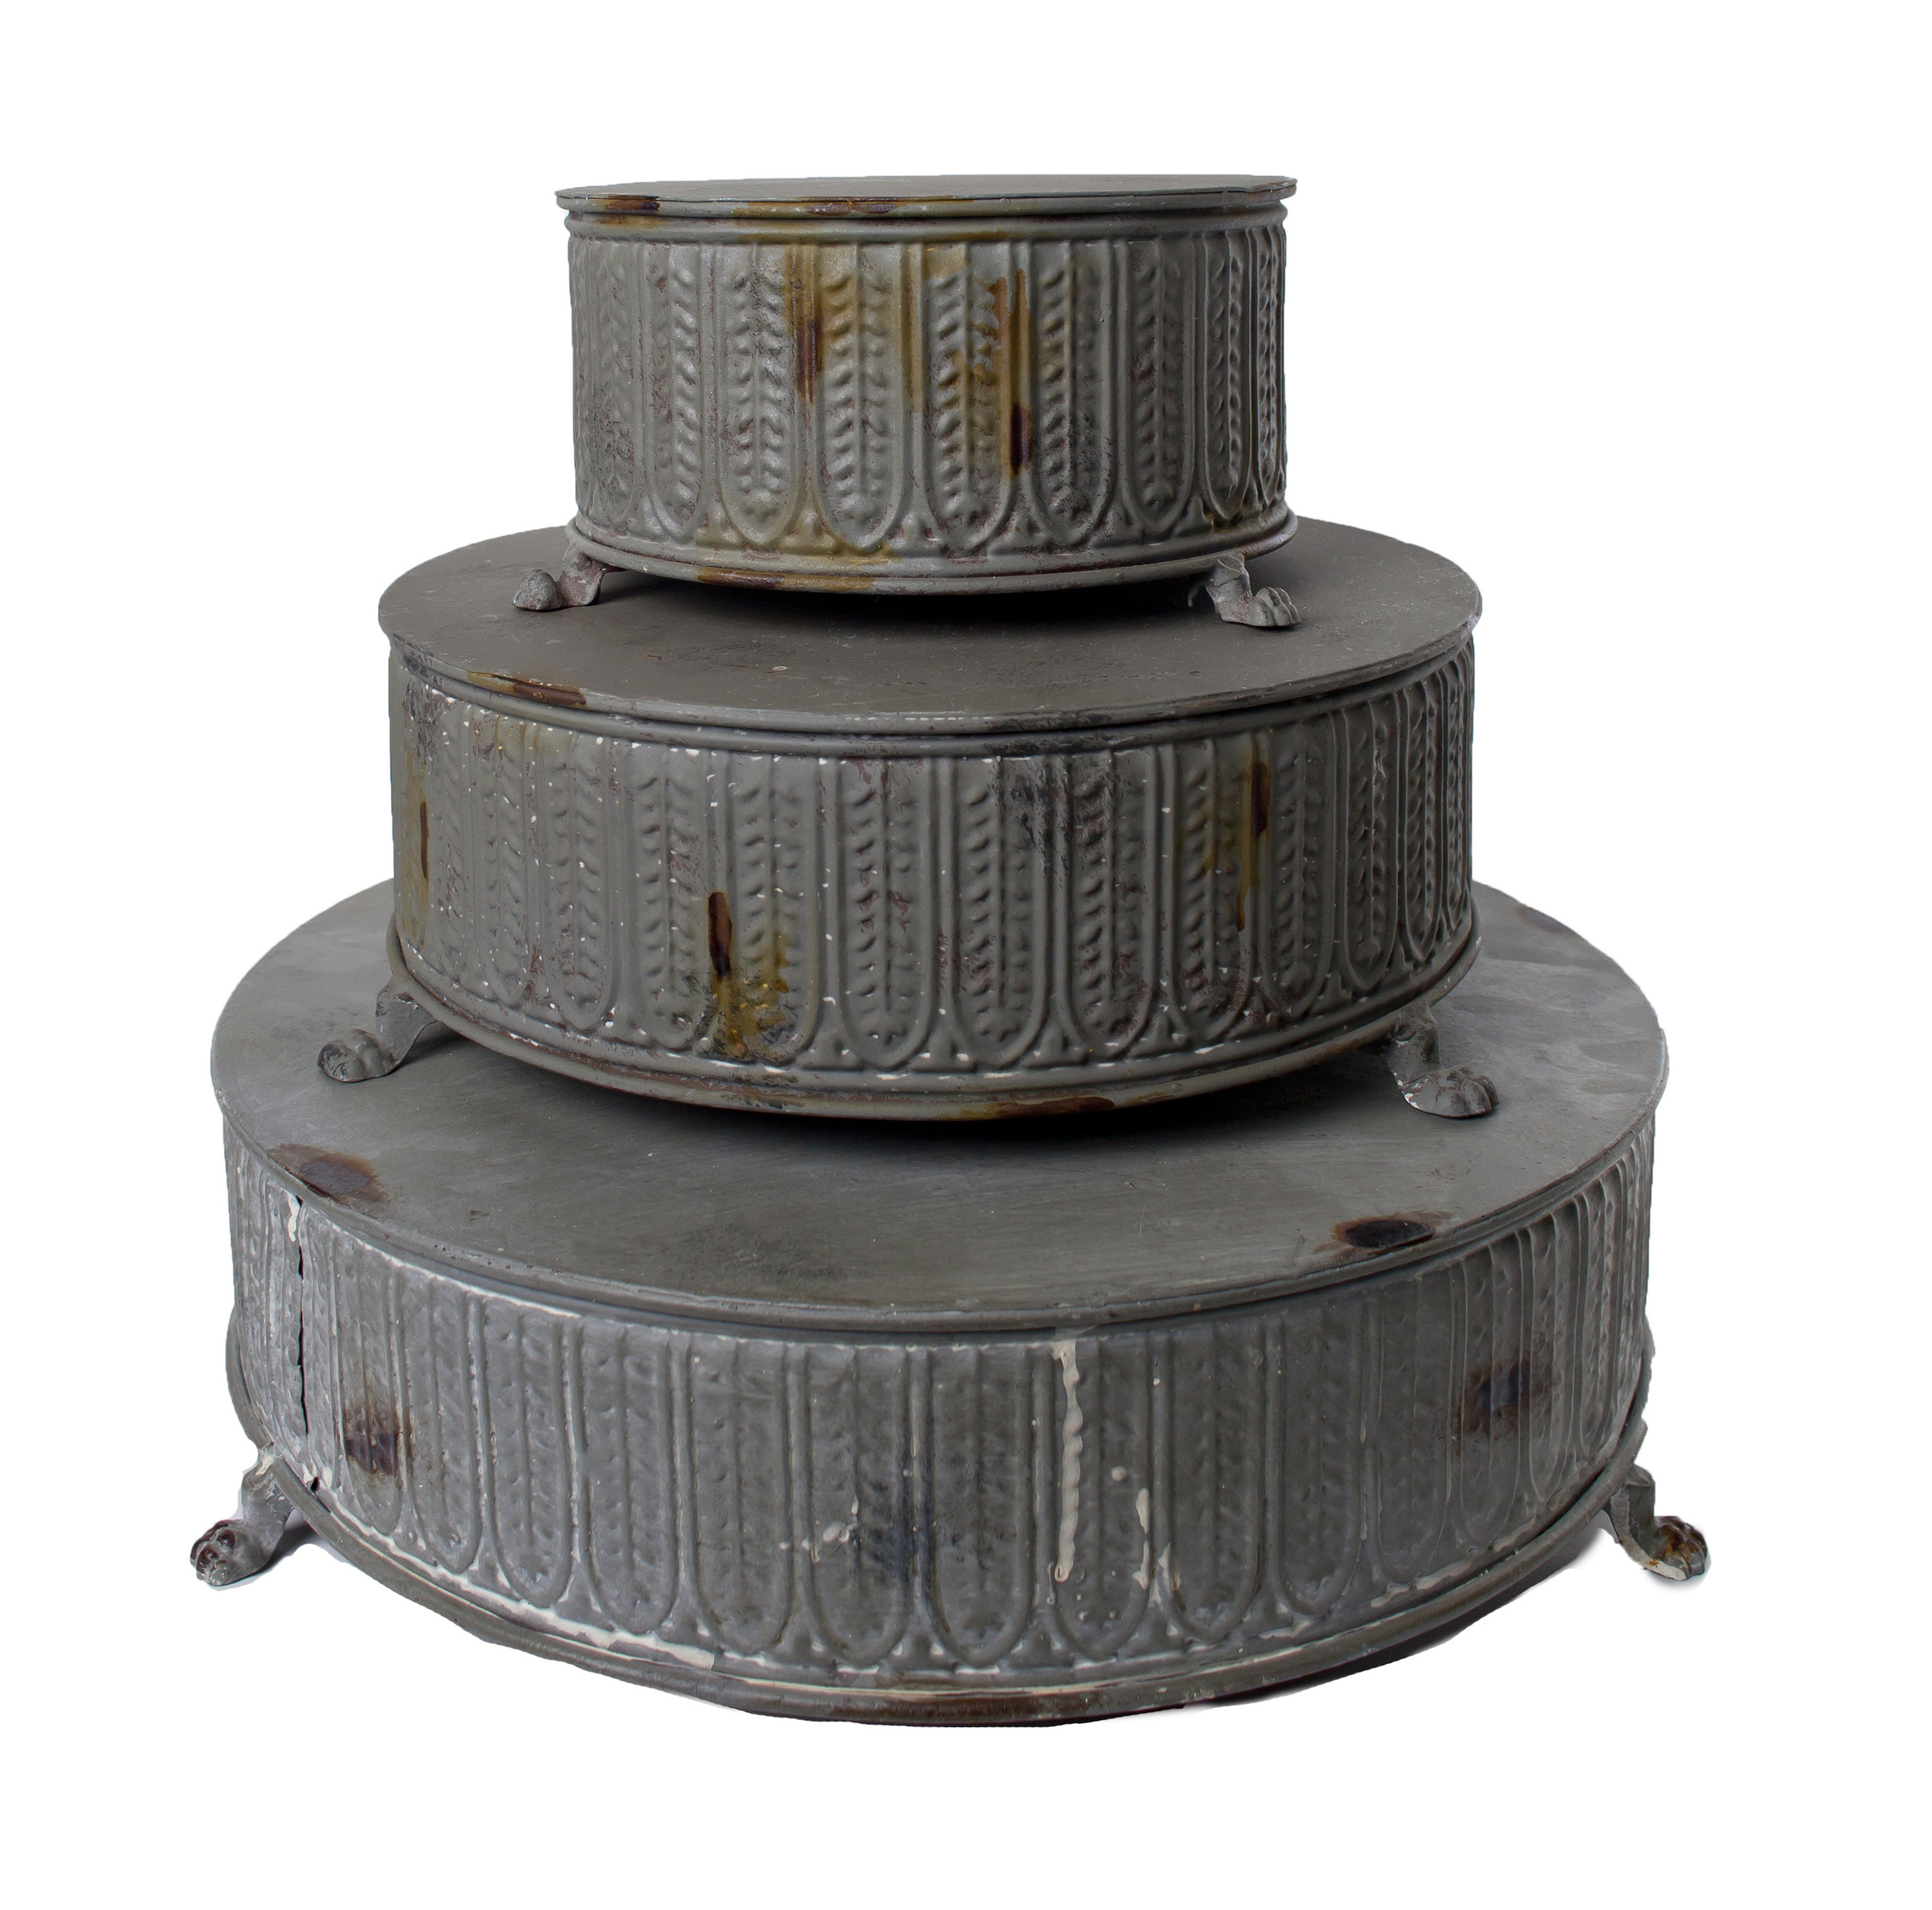 Distressed Metal Cake Stands